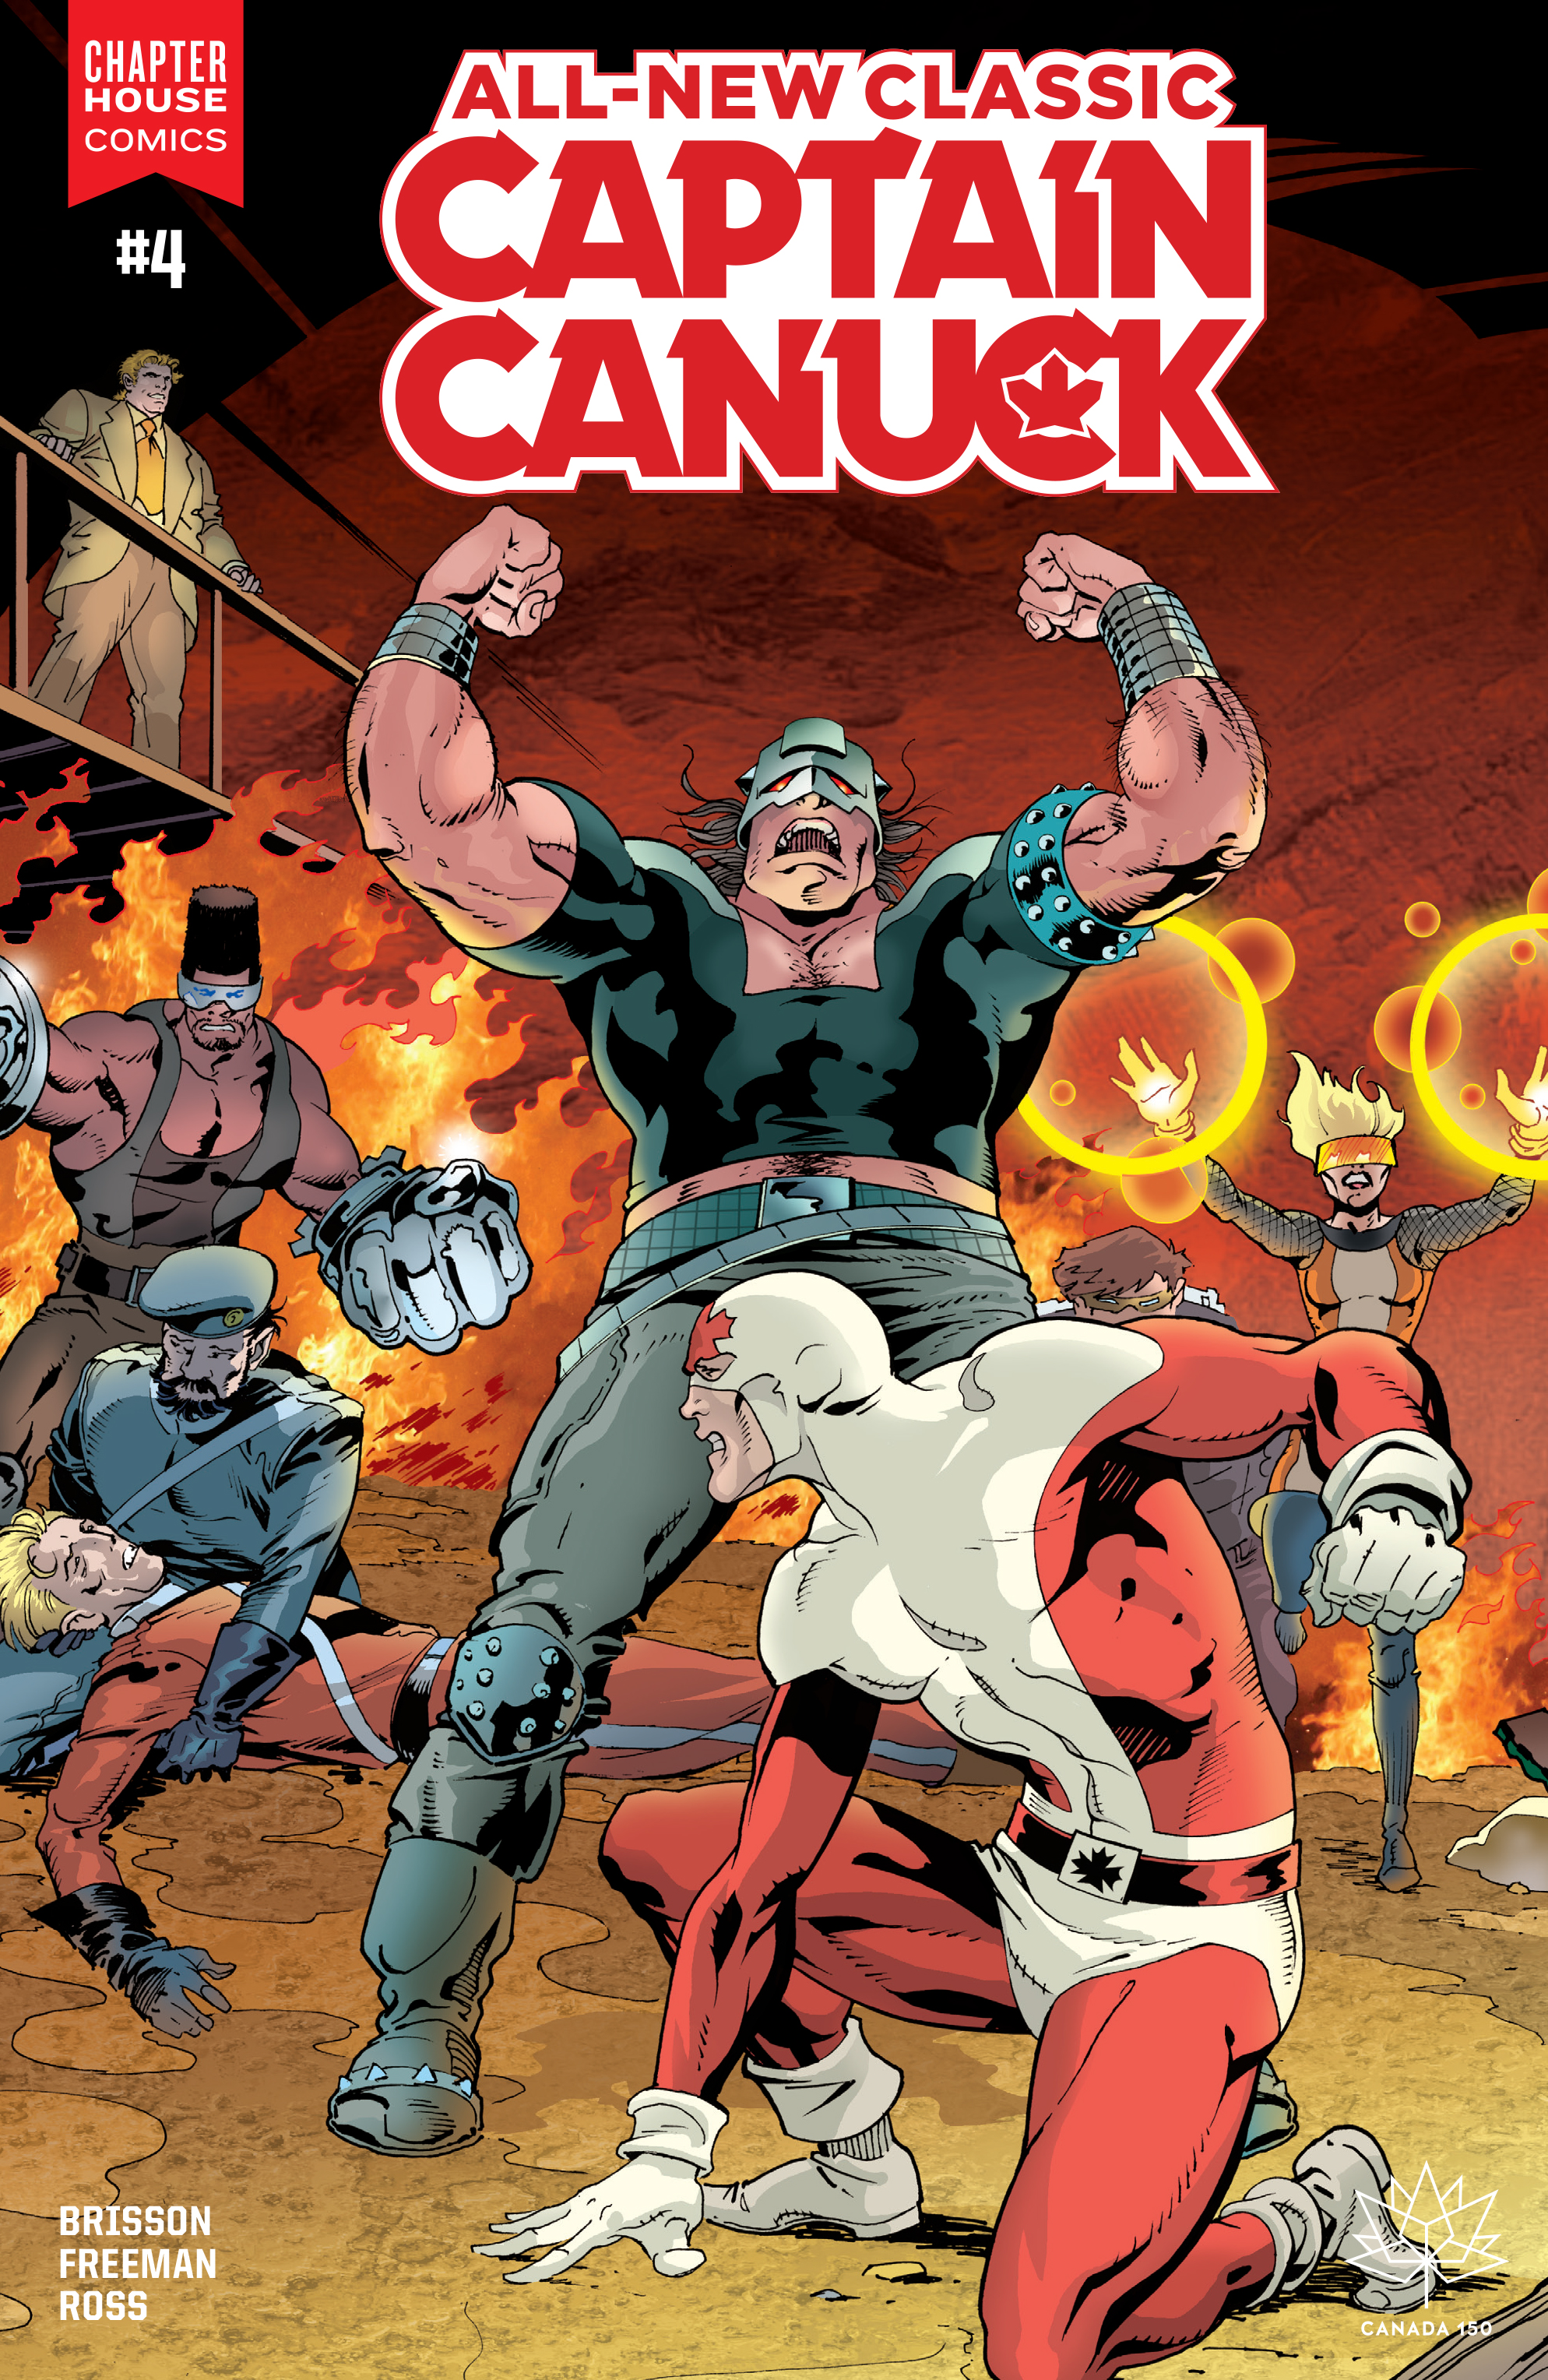 Read online All-New Classic Captain Canuck comic -  Issue #4 - 1